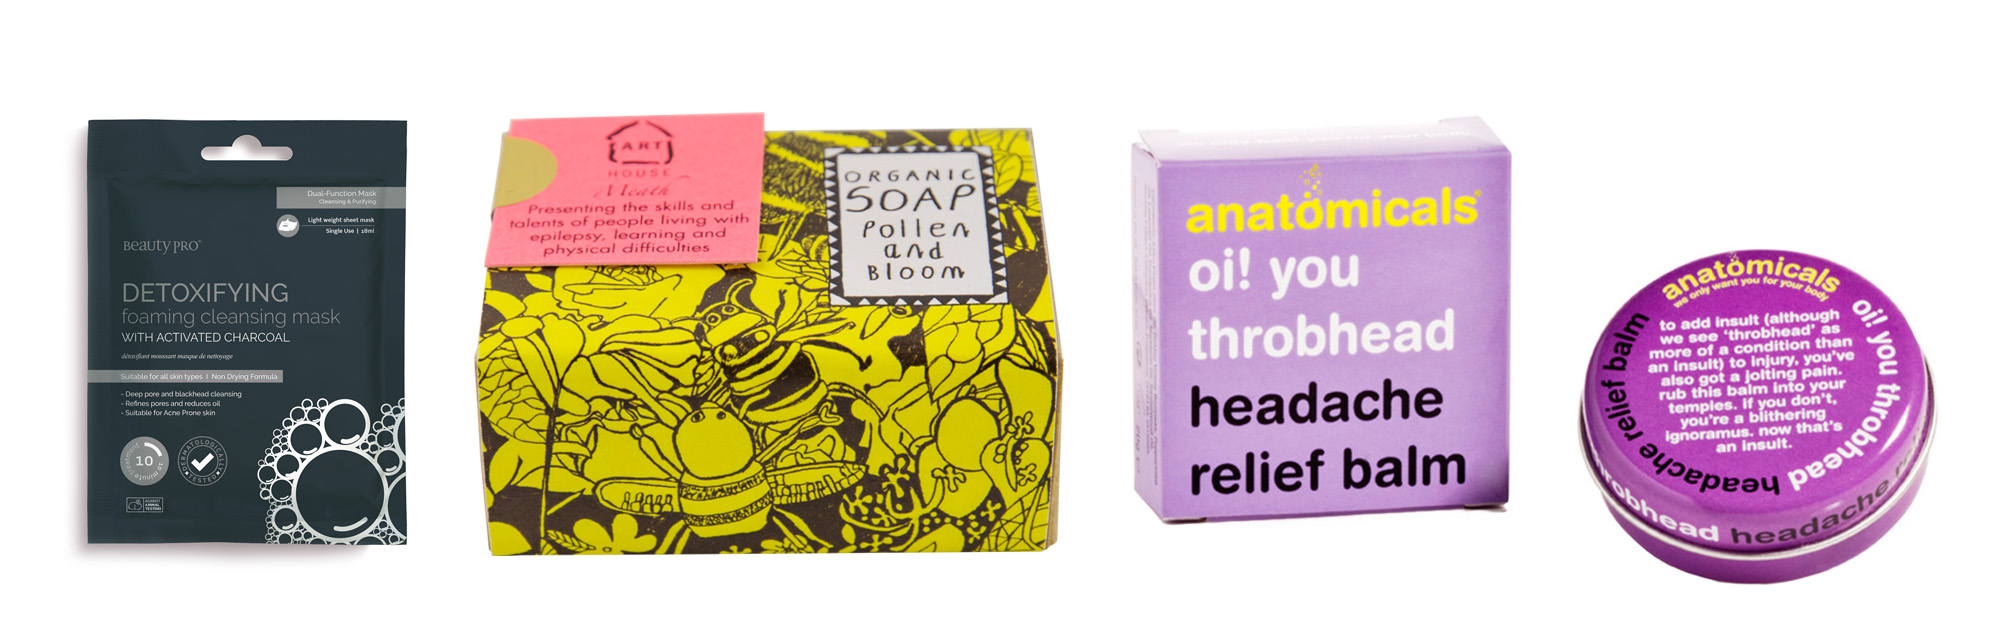 Healthy and beauty goodie bag products face mask soap headache relief balm